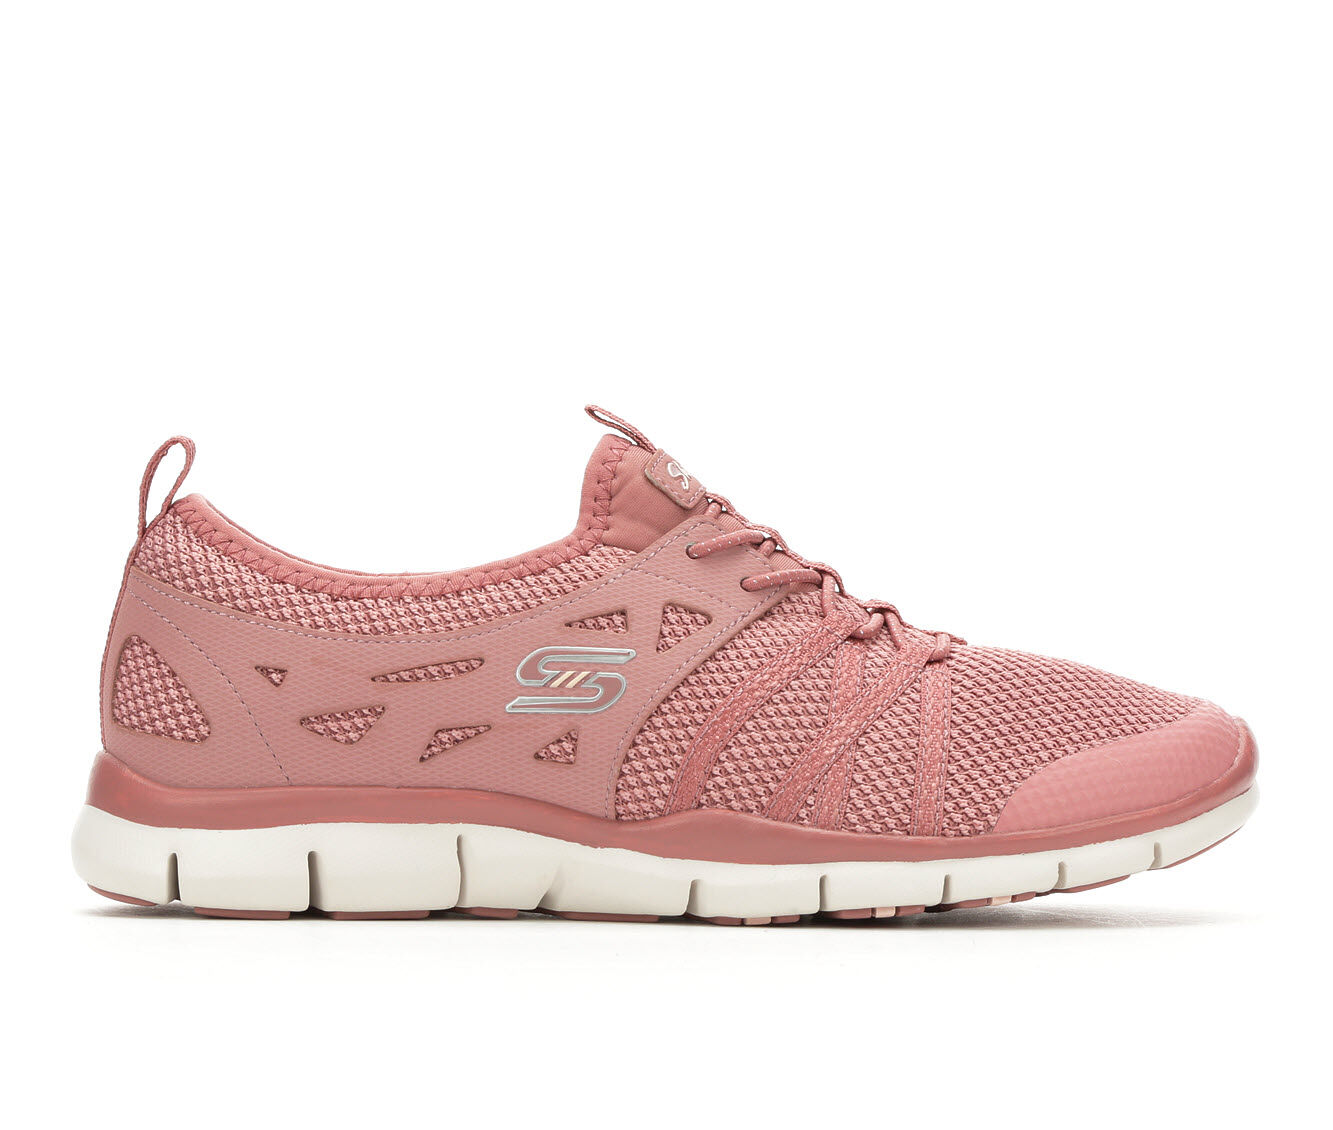 Women's Skechers What A Sight 23360 Slip-On Sneakers Rose